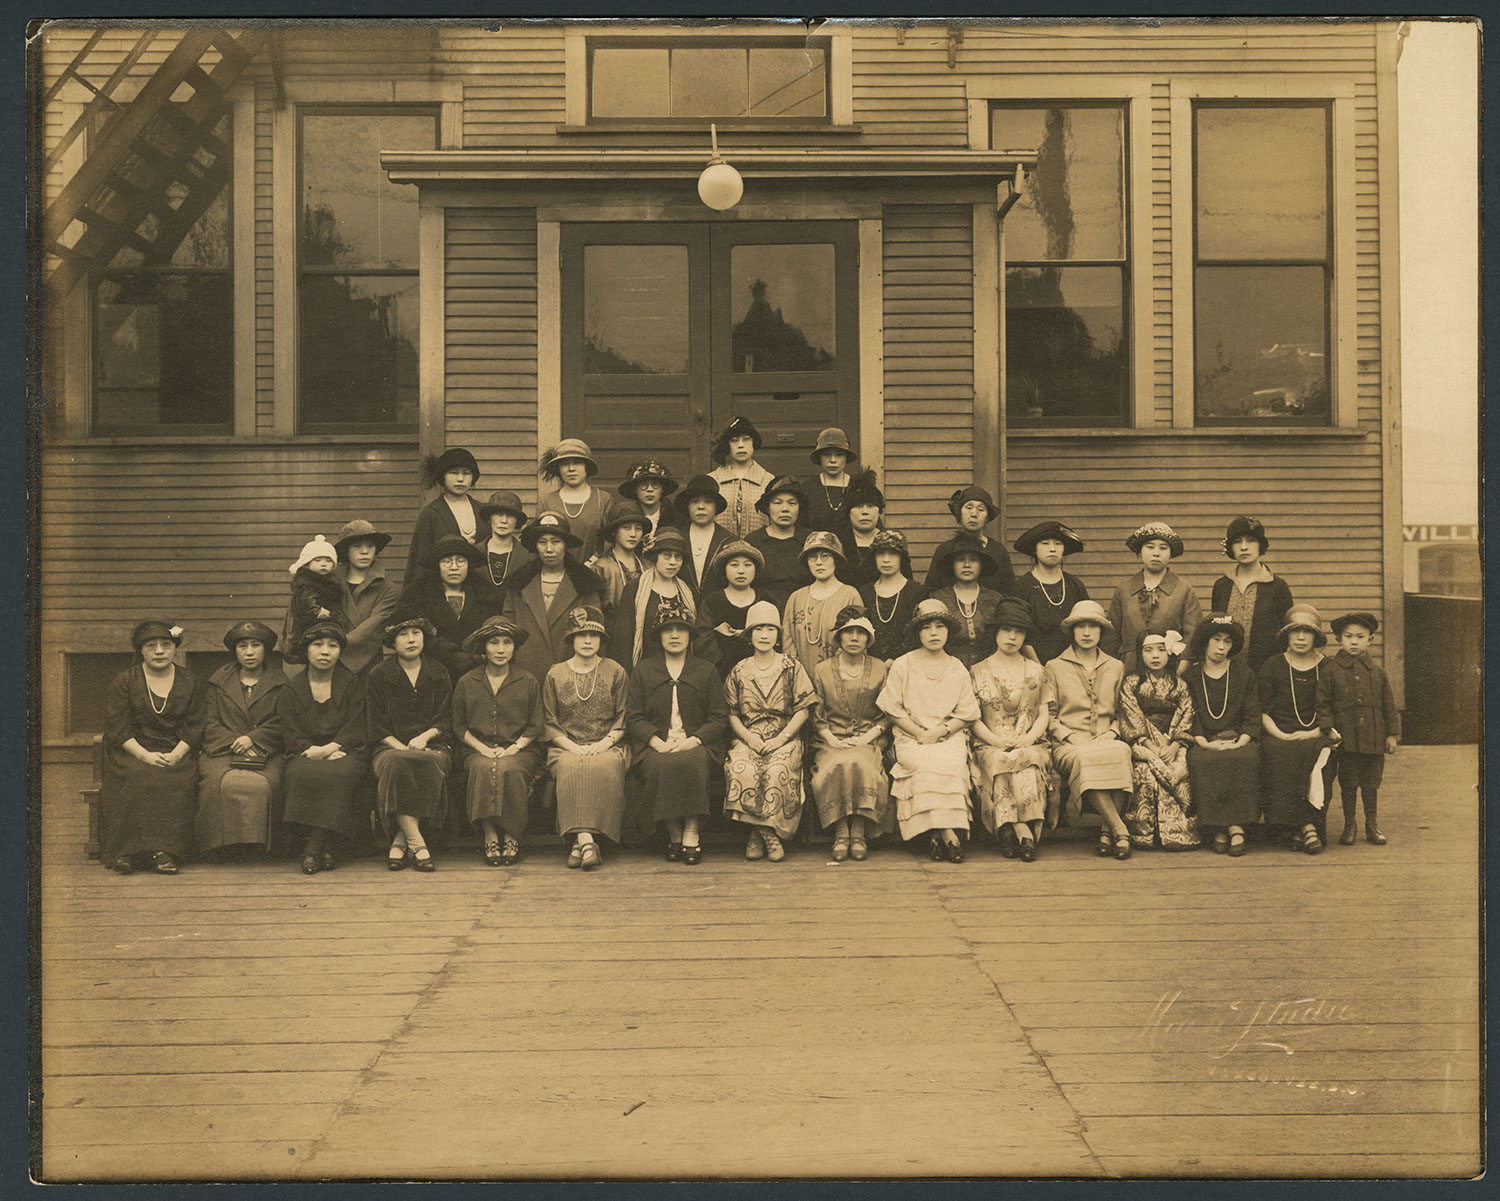 Women at the Vancouver Japanese Language School: Recto